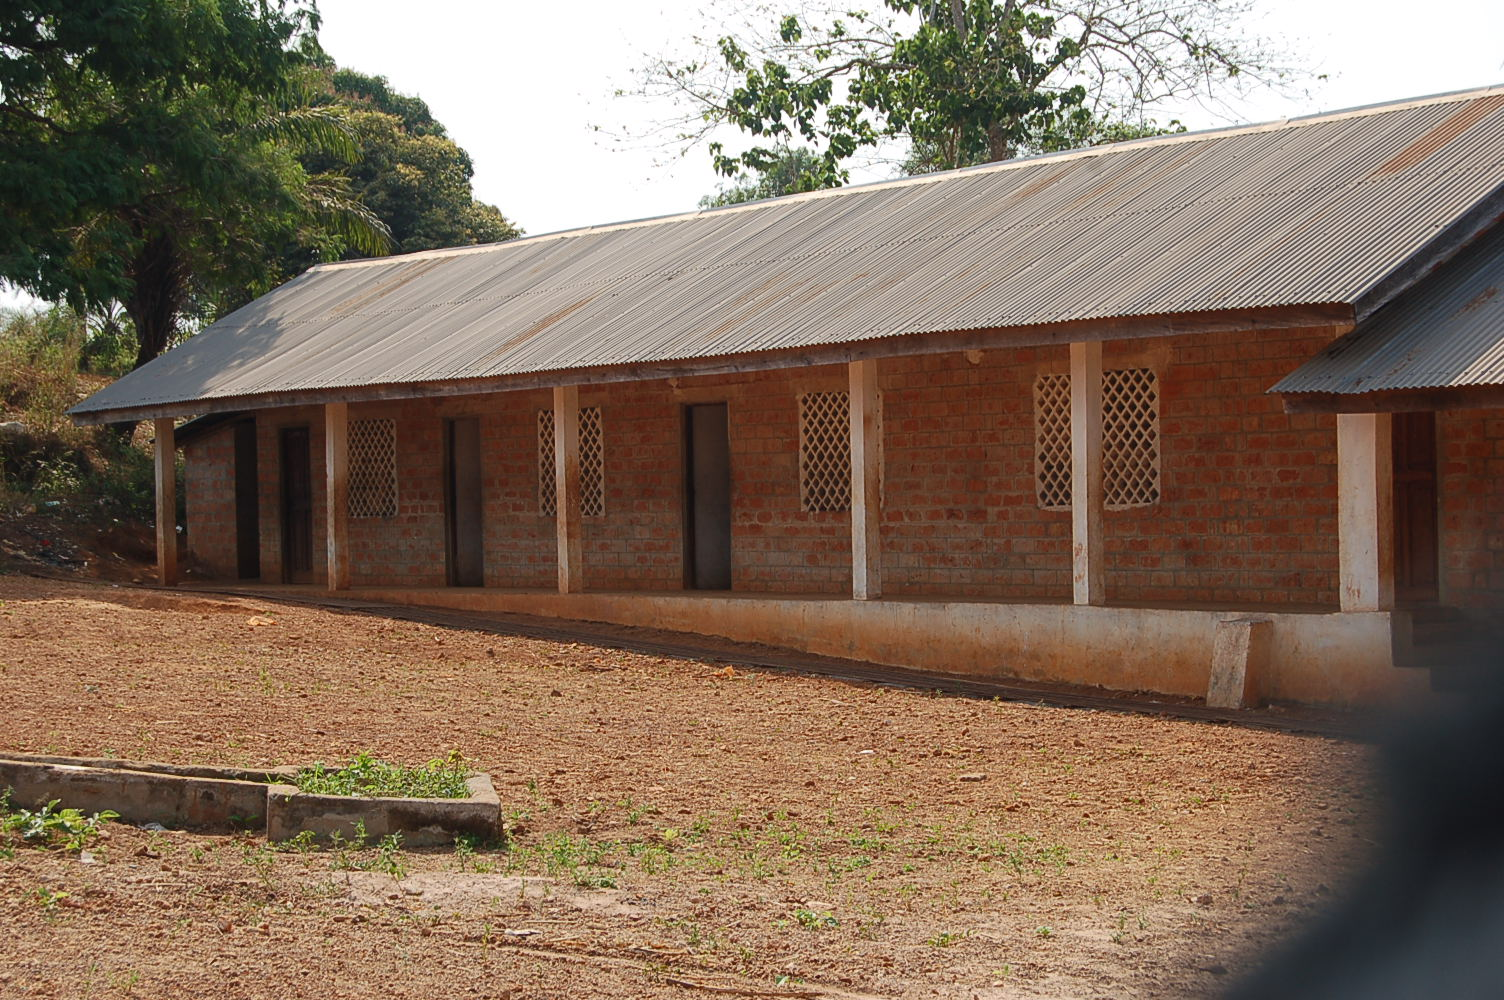 Mabeni School for the Blind